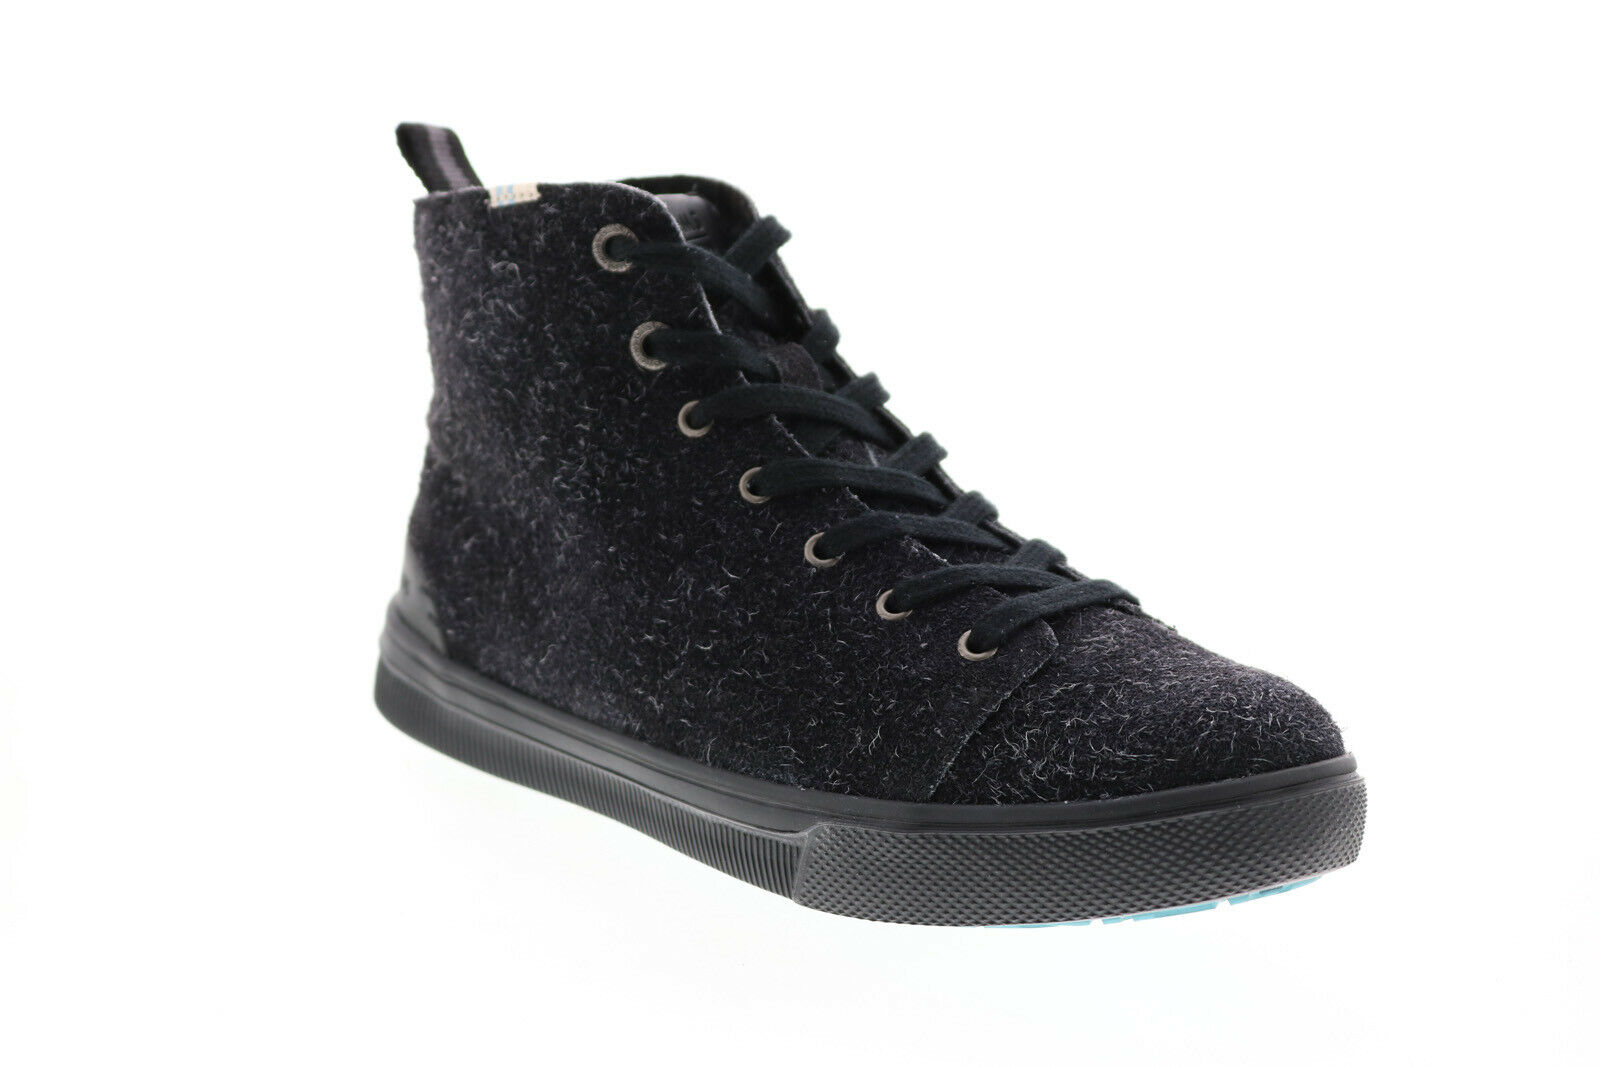 Toms TRVL LITE High 10014106 Womens Black Suede Lace Up Lifestyle Sneakers Shoes